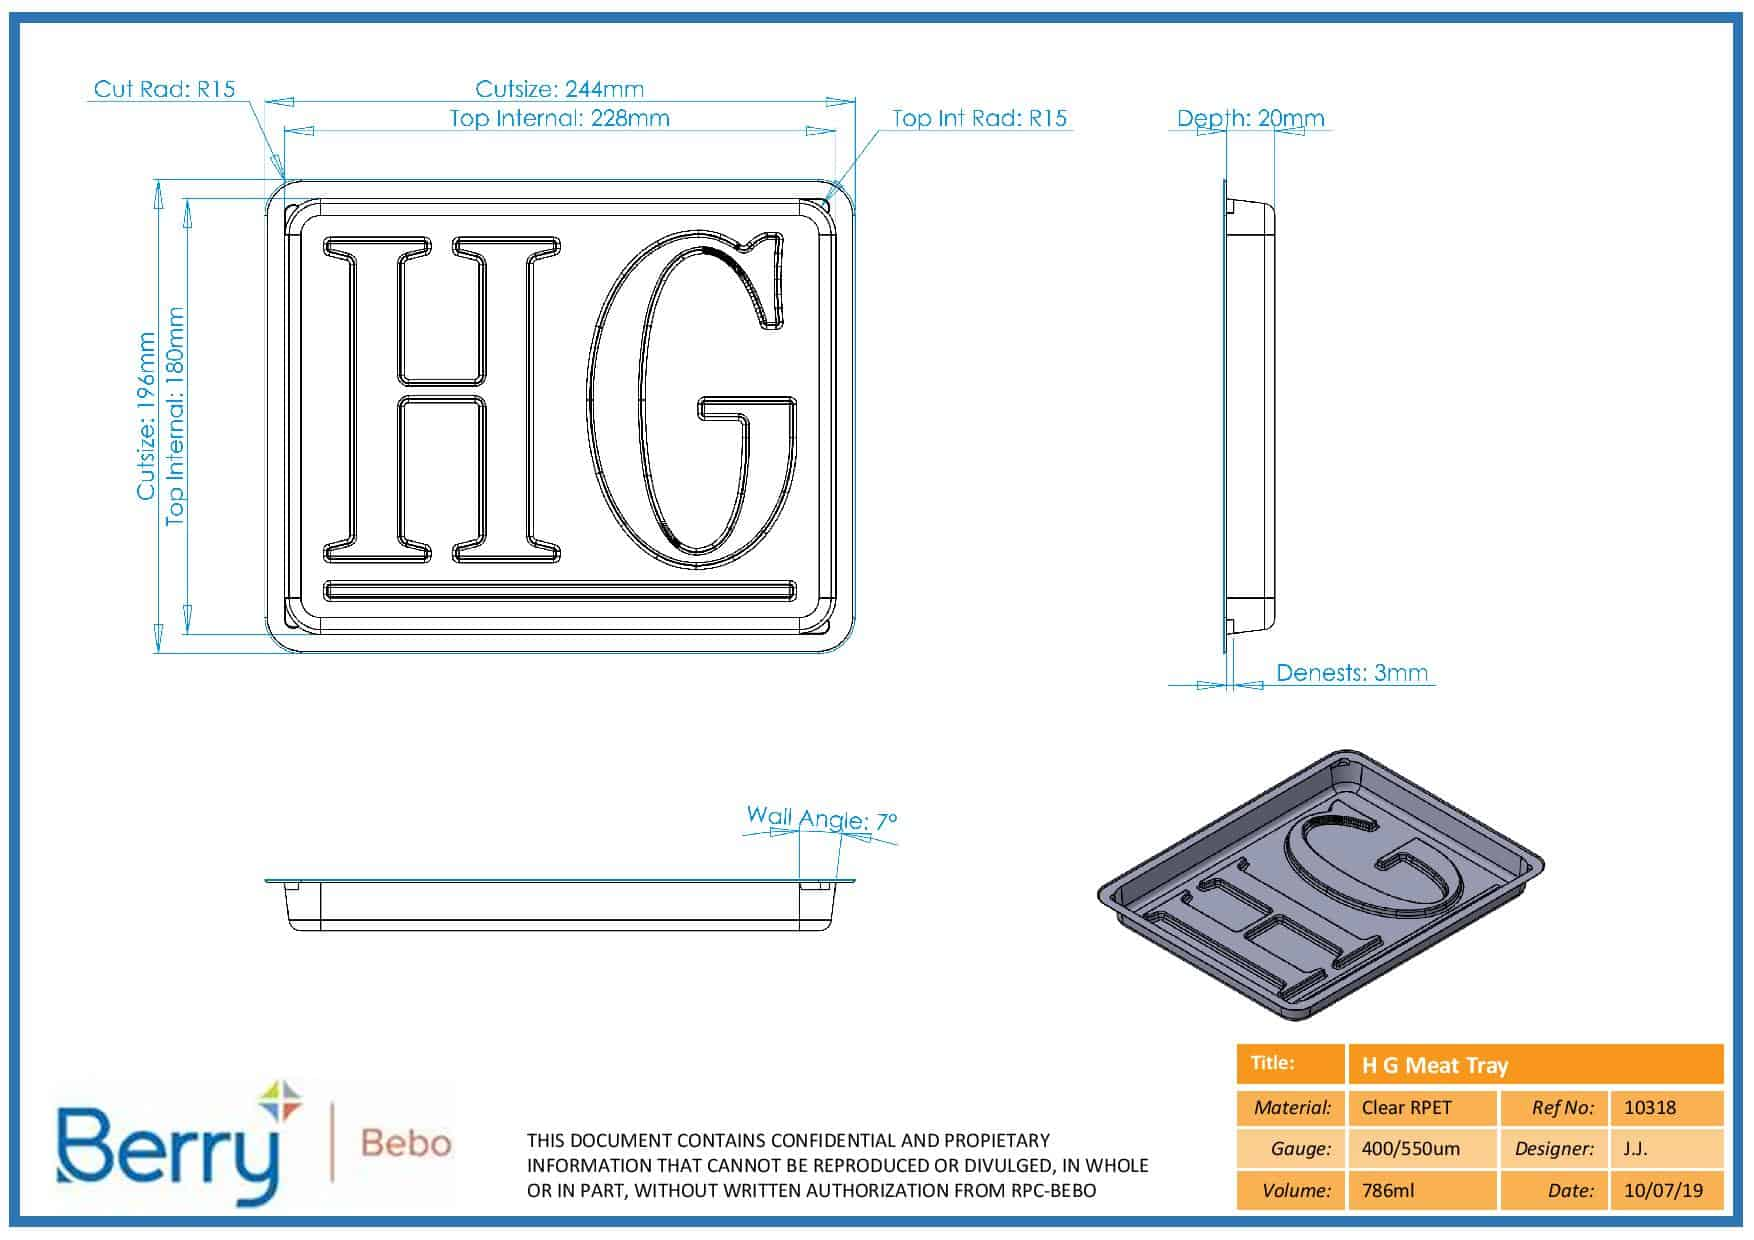 A CAD design of a meat tray designed by Queensbury Products Ltd in Bridgwater, Somerset, UK.